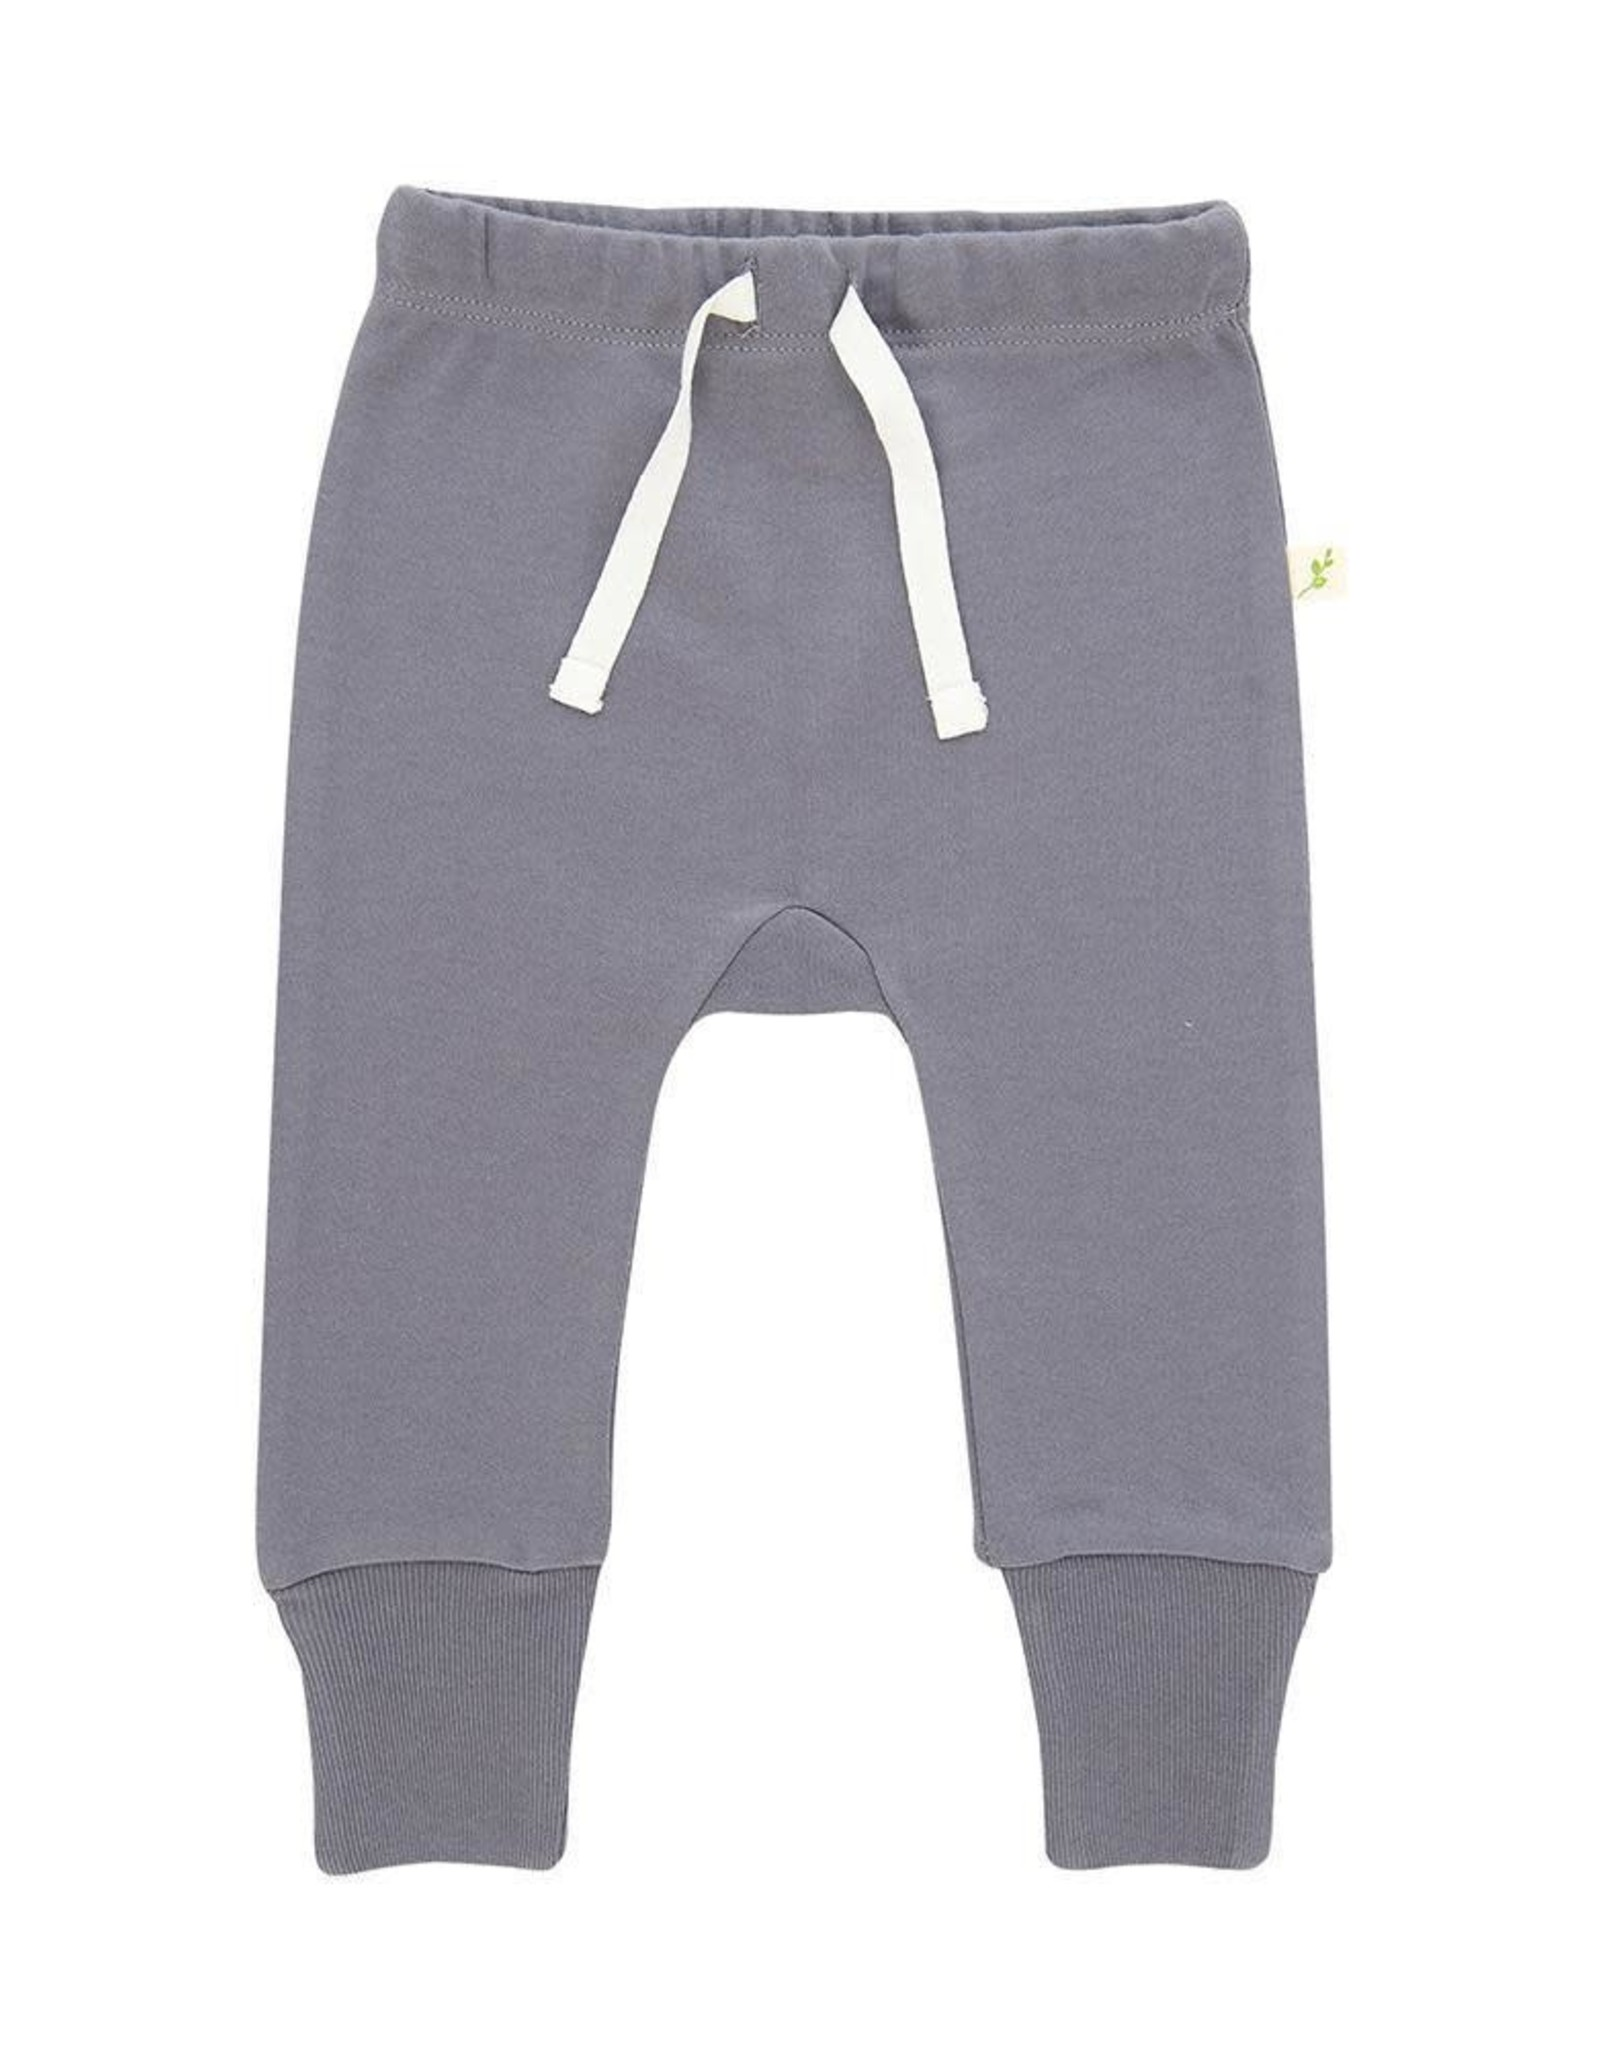 Tiny Twig Knitted Harem Pant with Cuffs - Soft Gray